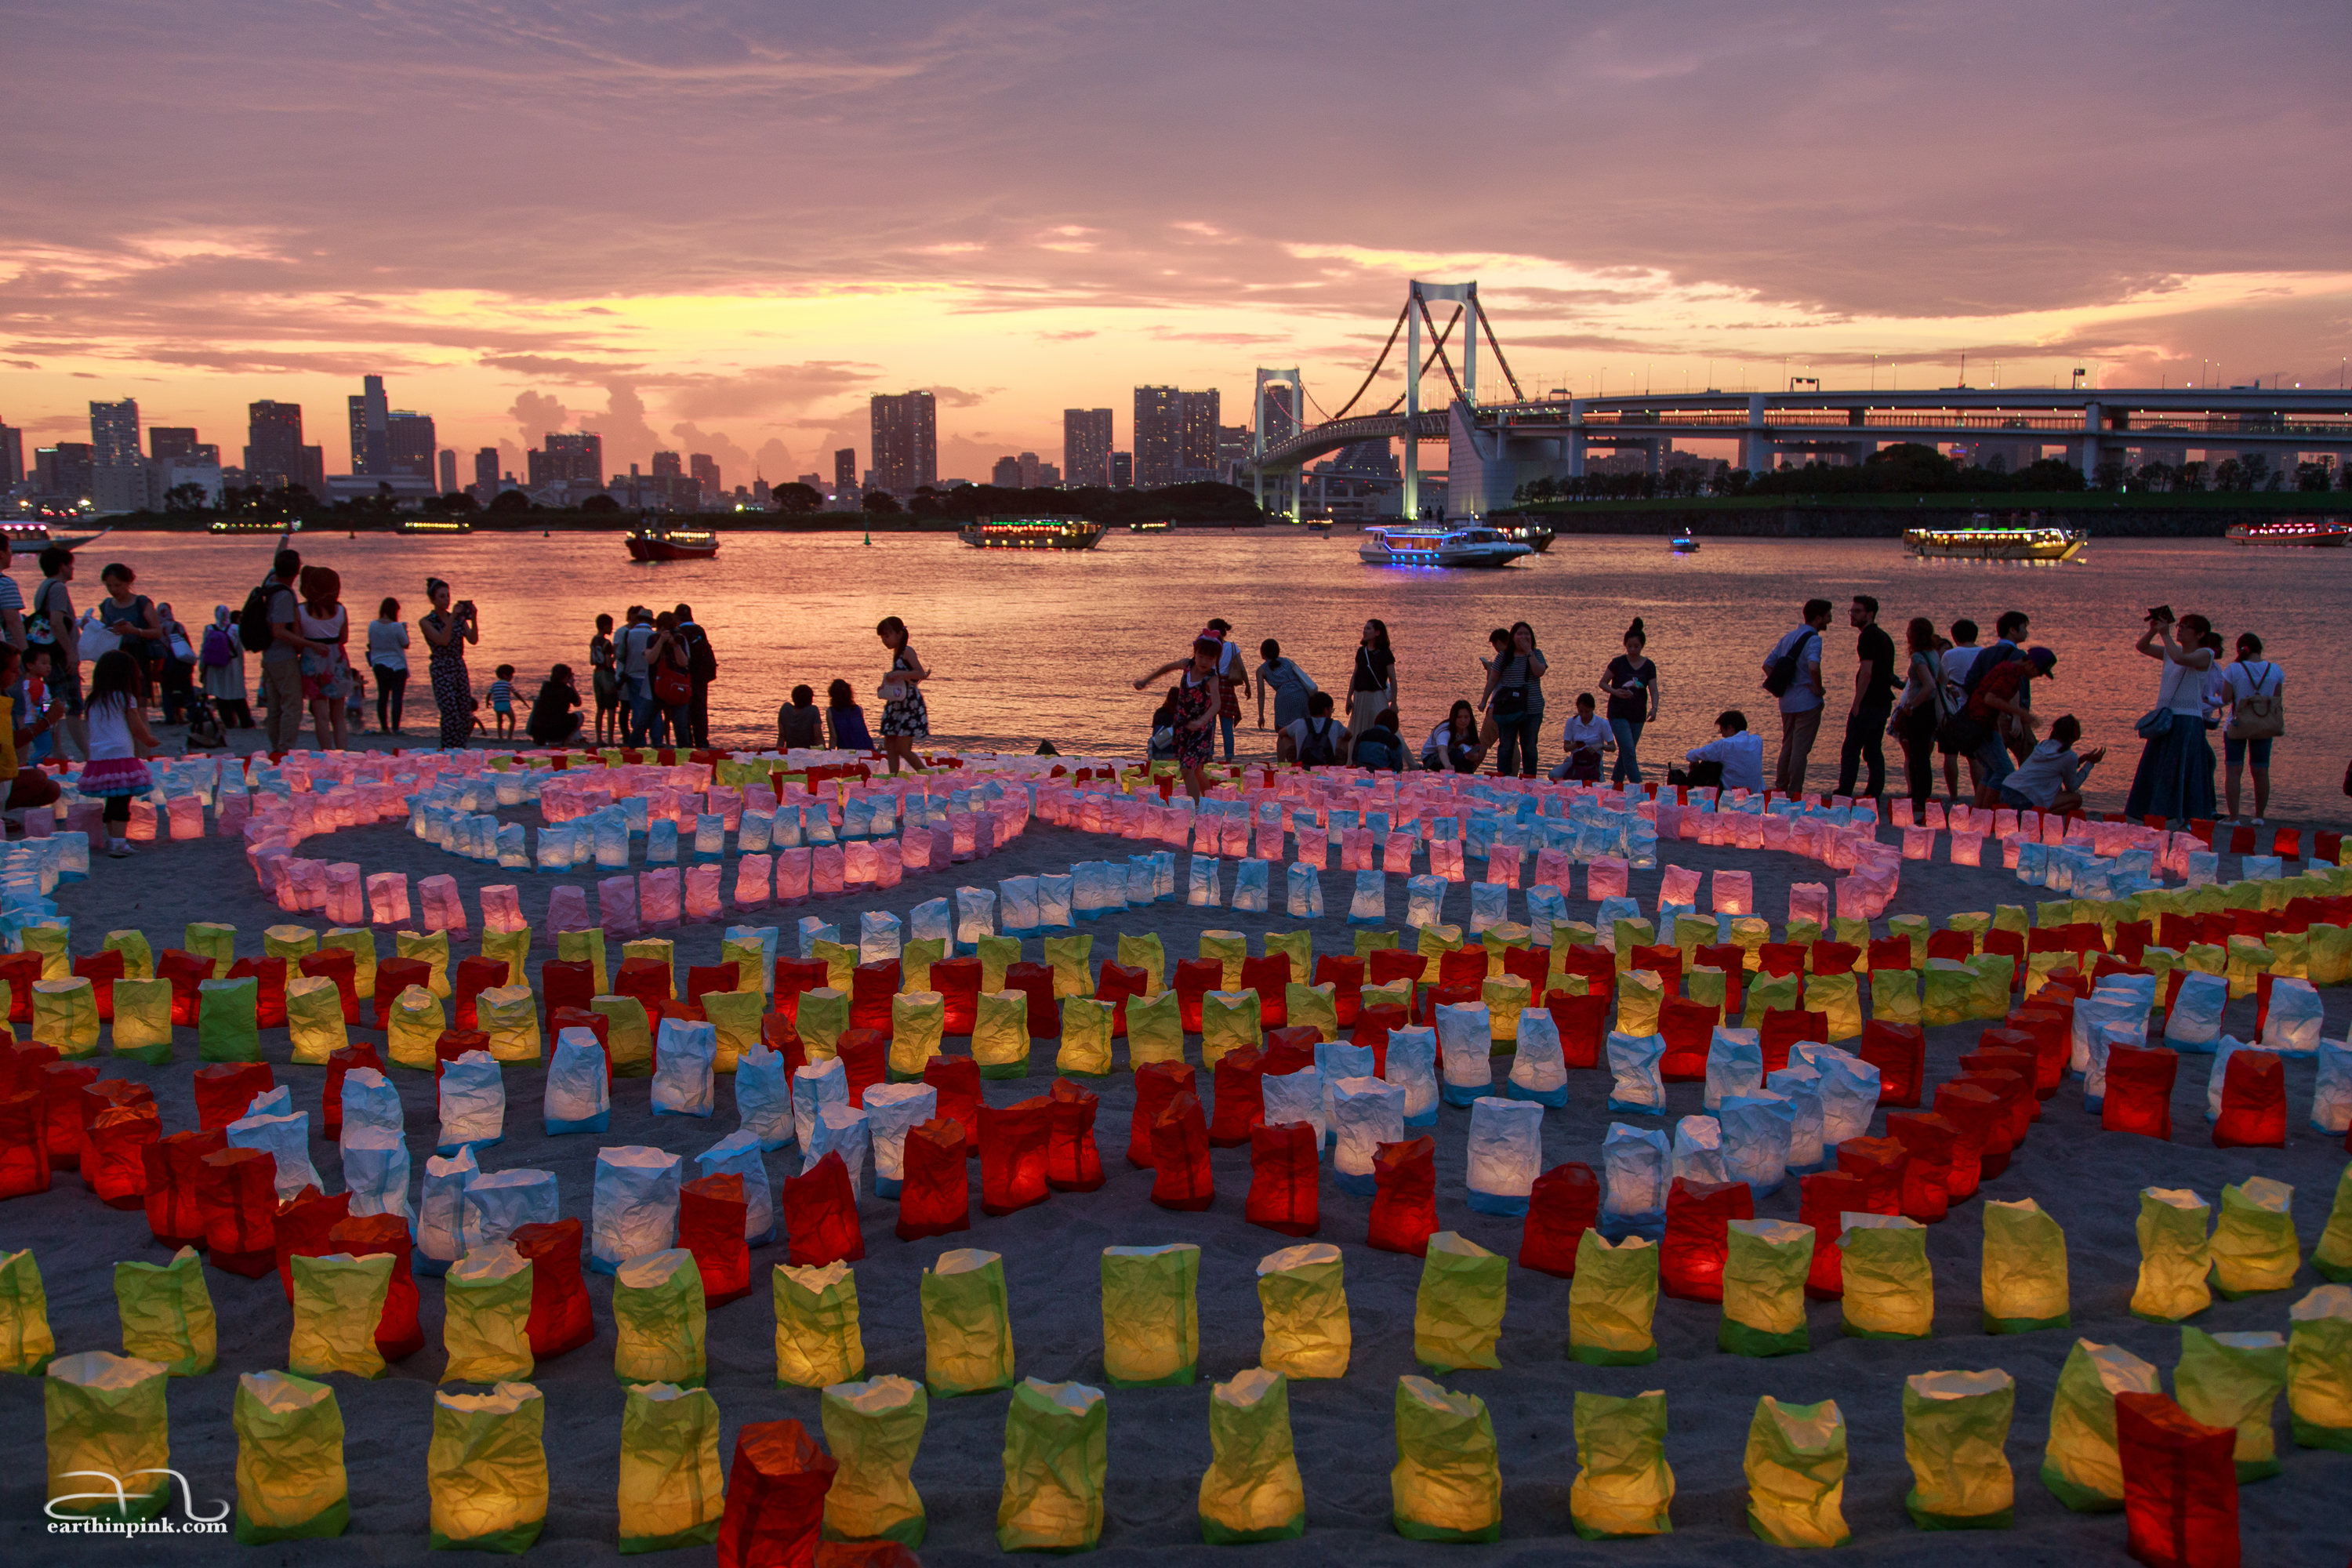 Hundreds of paper lanterns arranged by volunteers on Odaiba beach to celebrate Umi no hi (ocean day) on the third Monday in July.